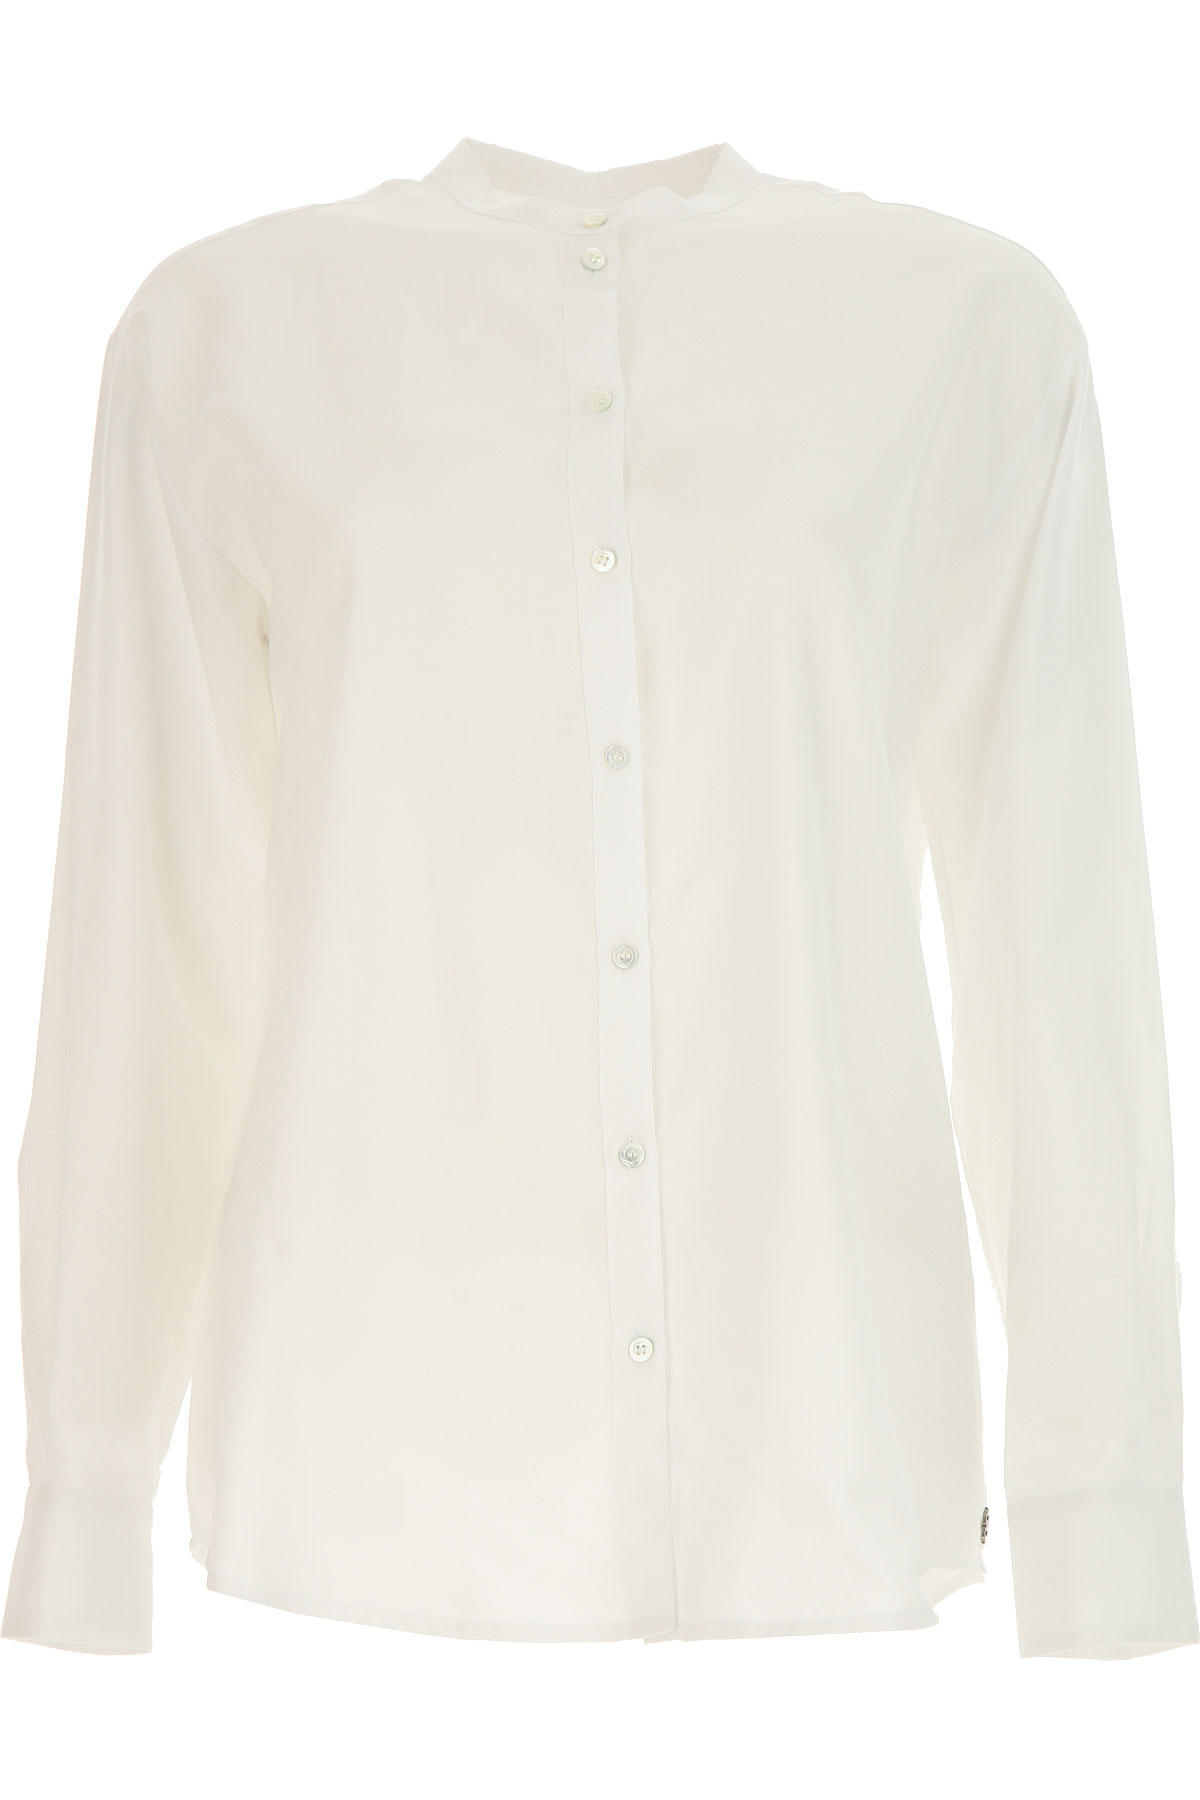 Image of Ottodame Shirt for Women On Sale, White, Cotton, 2017, US 4 - I 40 - GB 8 - F36 US 6 - I 42 - GB 10 - F 38 US 8 - I 44 - GB 12 - F 40 US 10 - I 46 - GB 14 - F 42